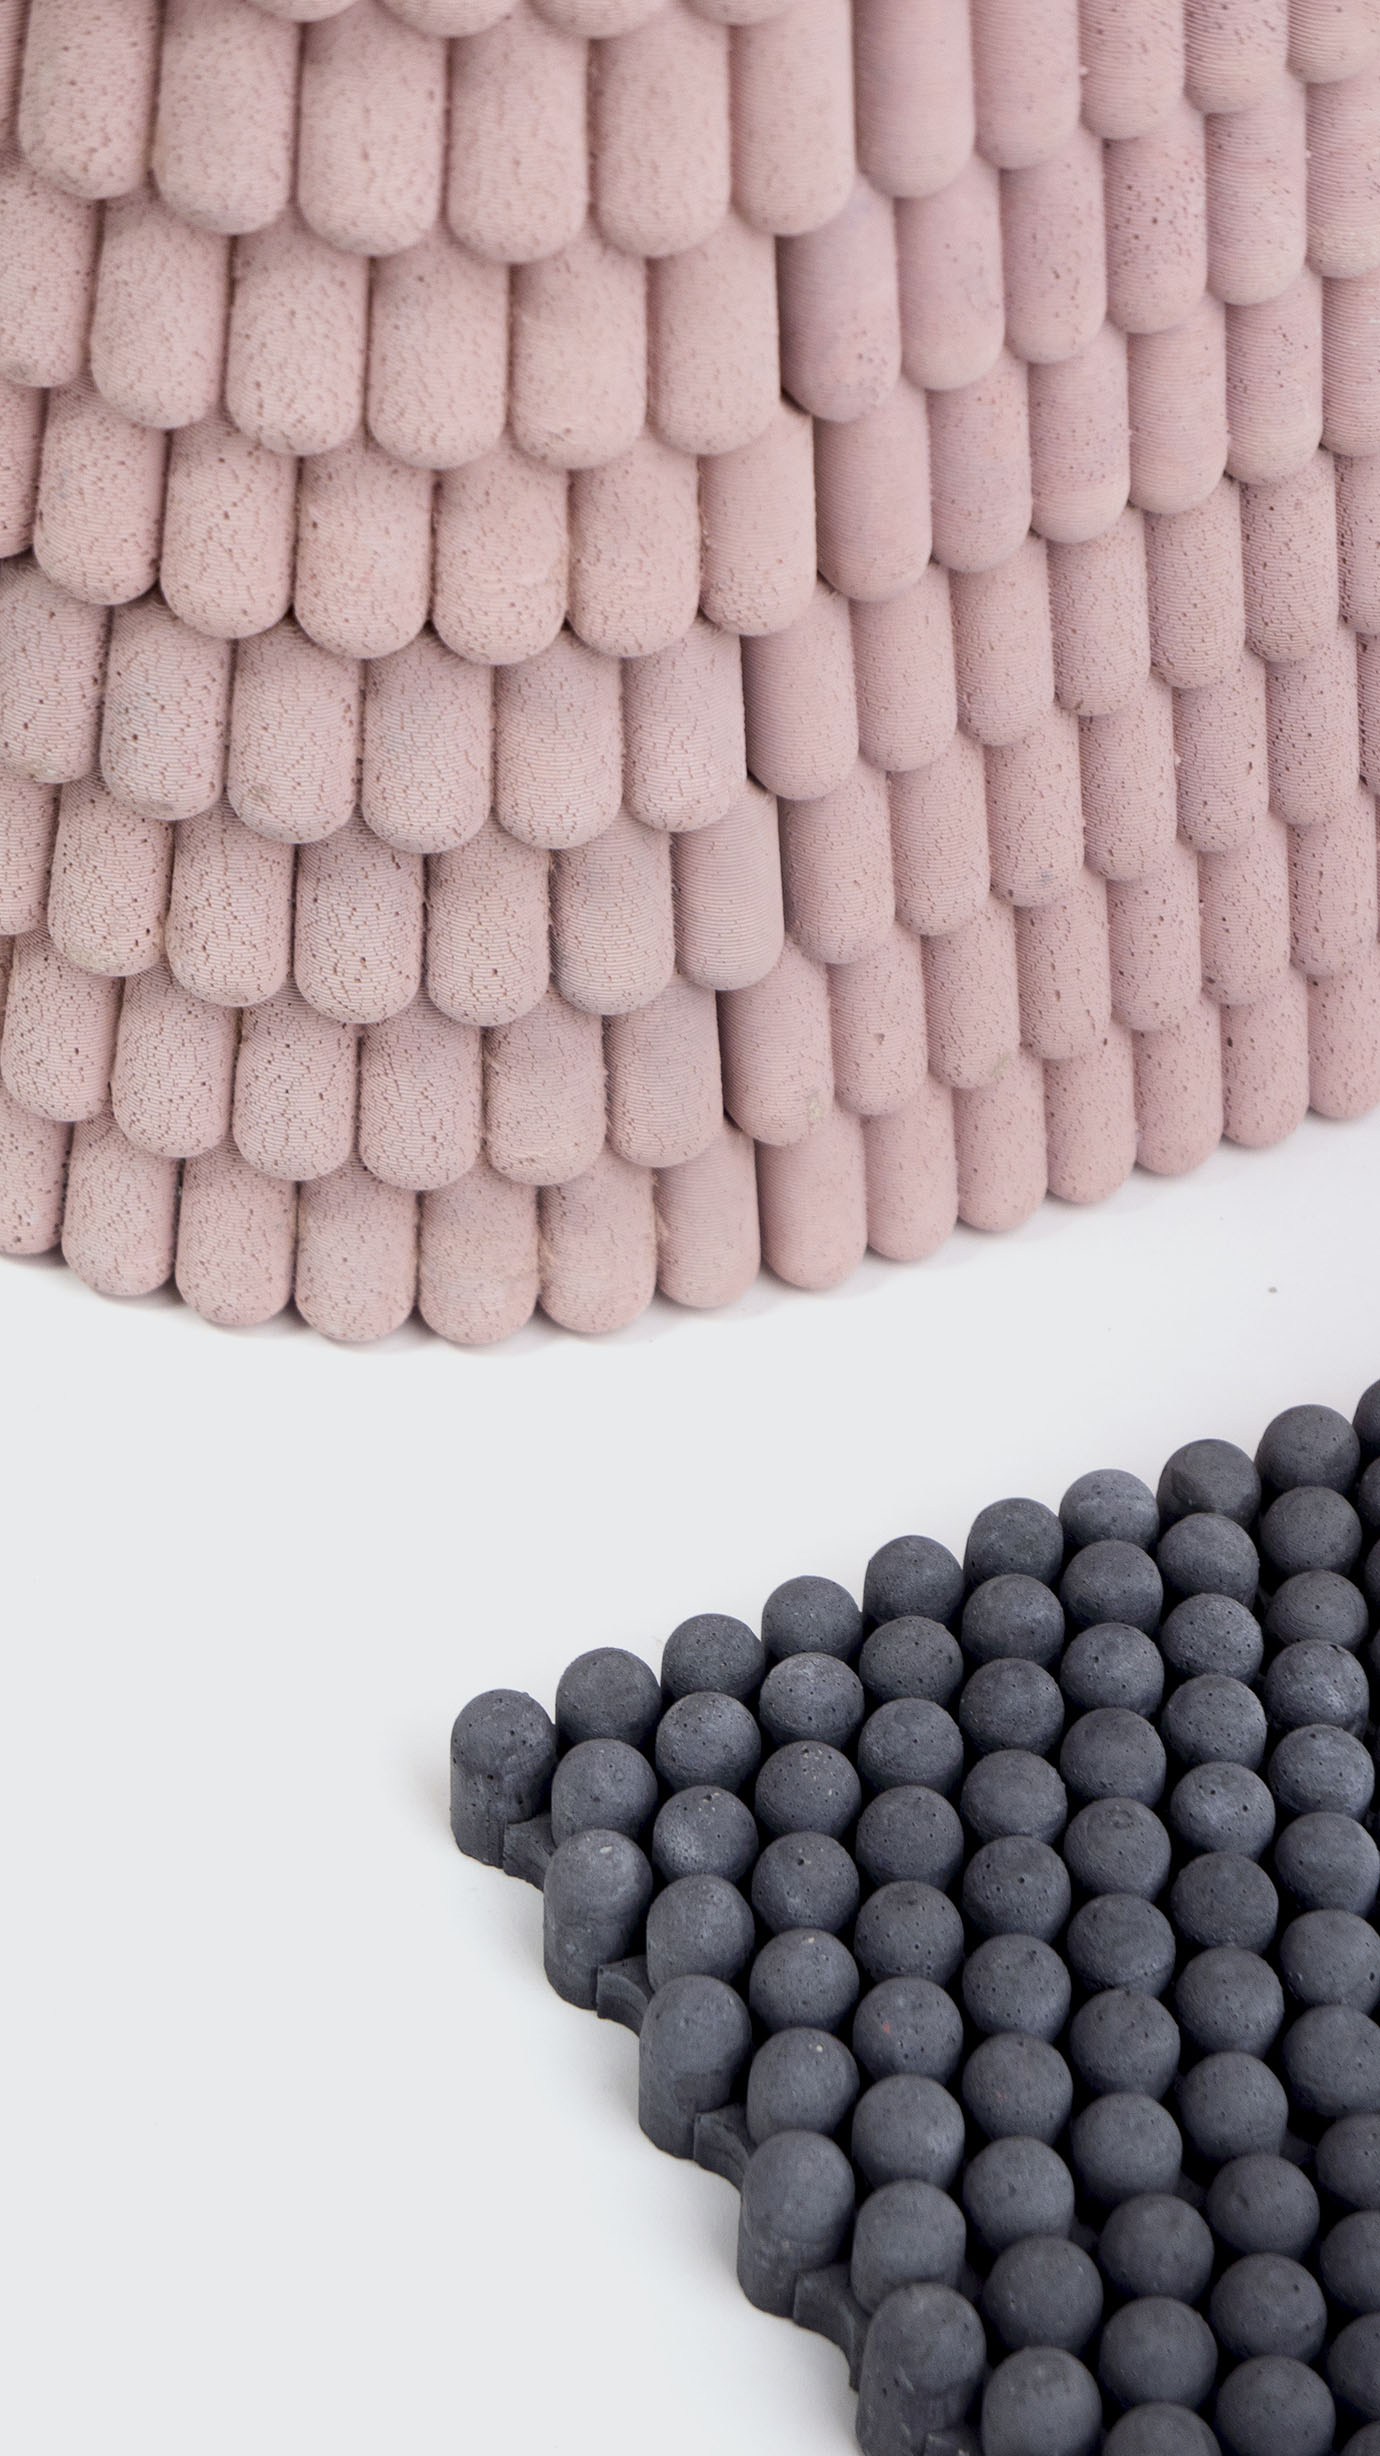 Carpet, and exterior wall-covering formats are seen in Iwan Pol's  Happy Concrete-II